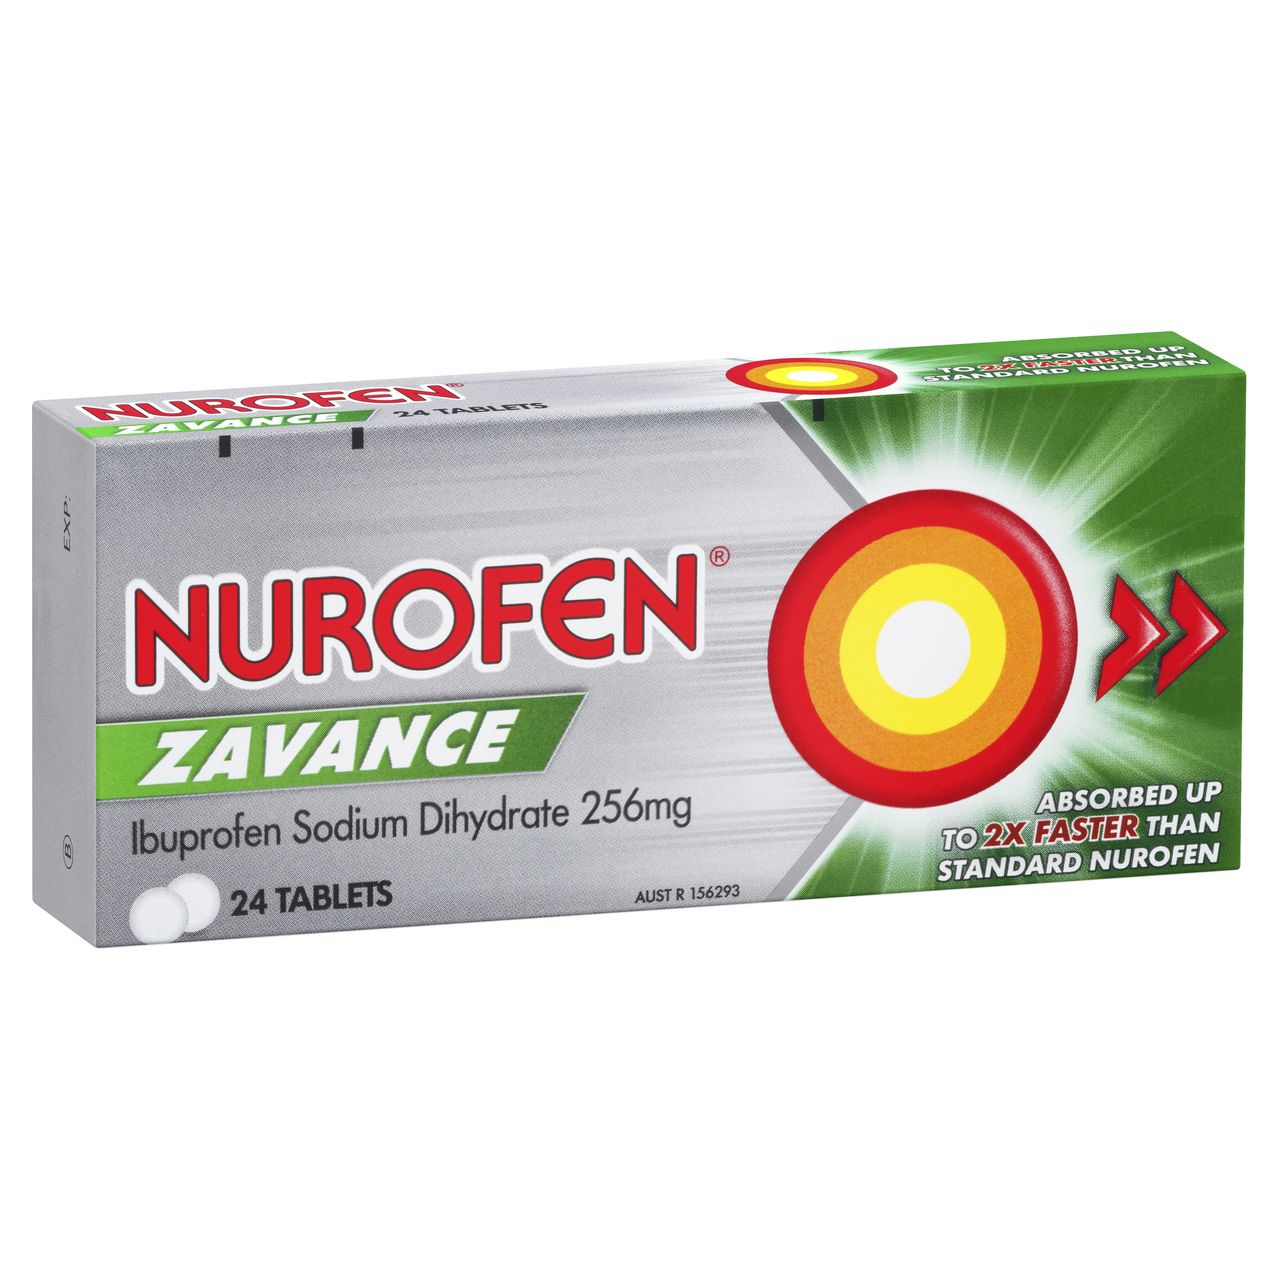 Image 1 for Nurofen 200mg Zavance Tablets x 24